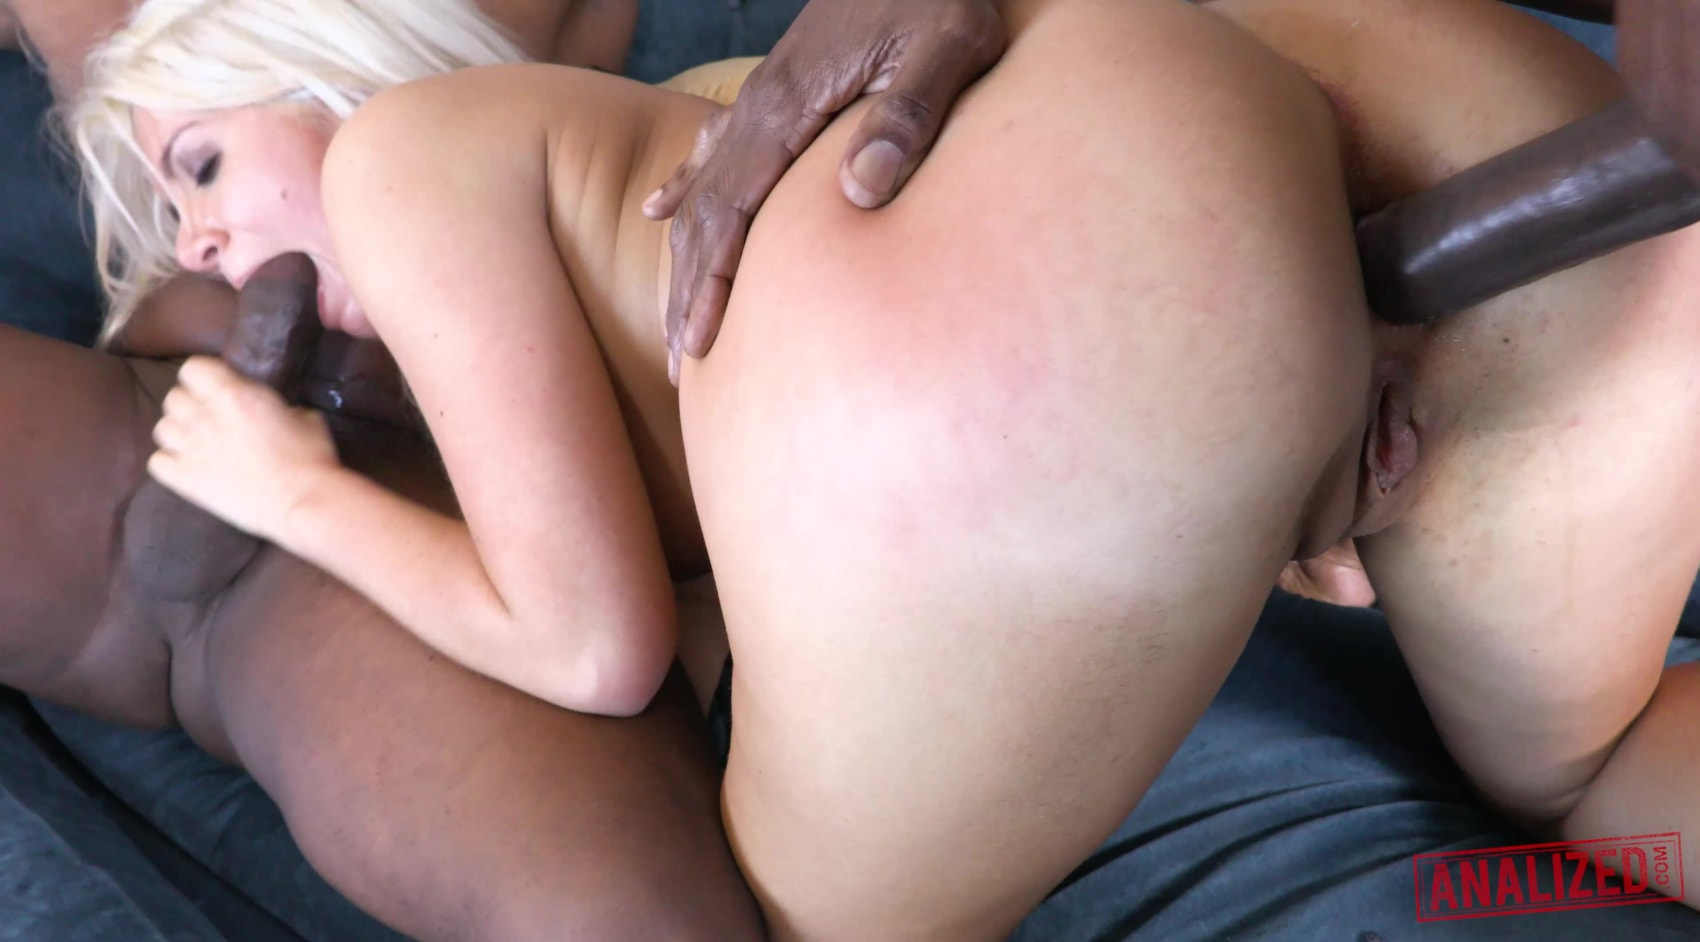 Layla Price The Perfect Anal Who